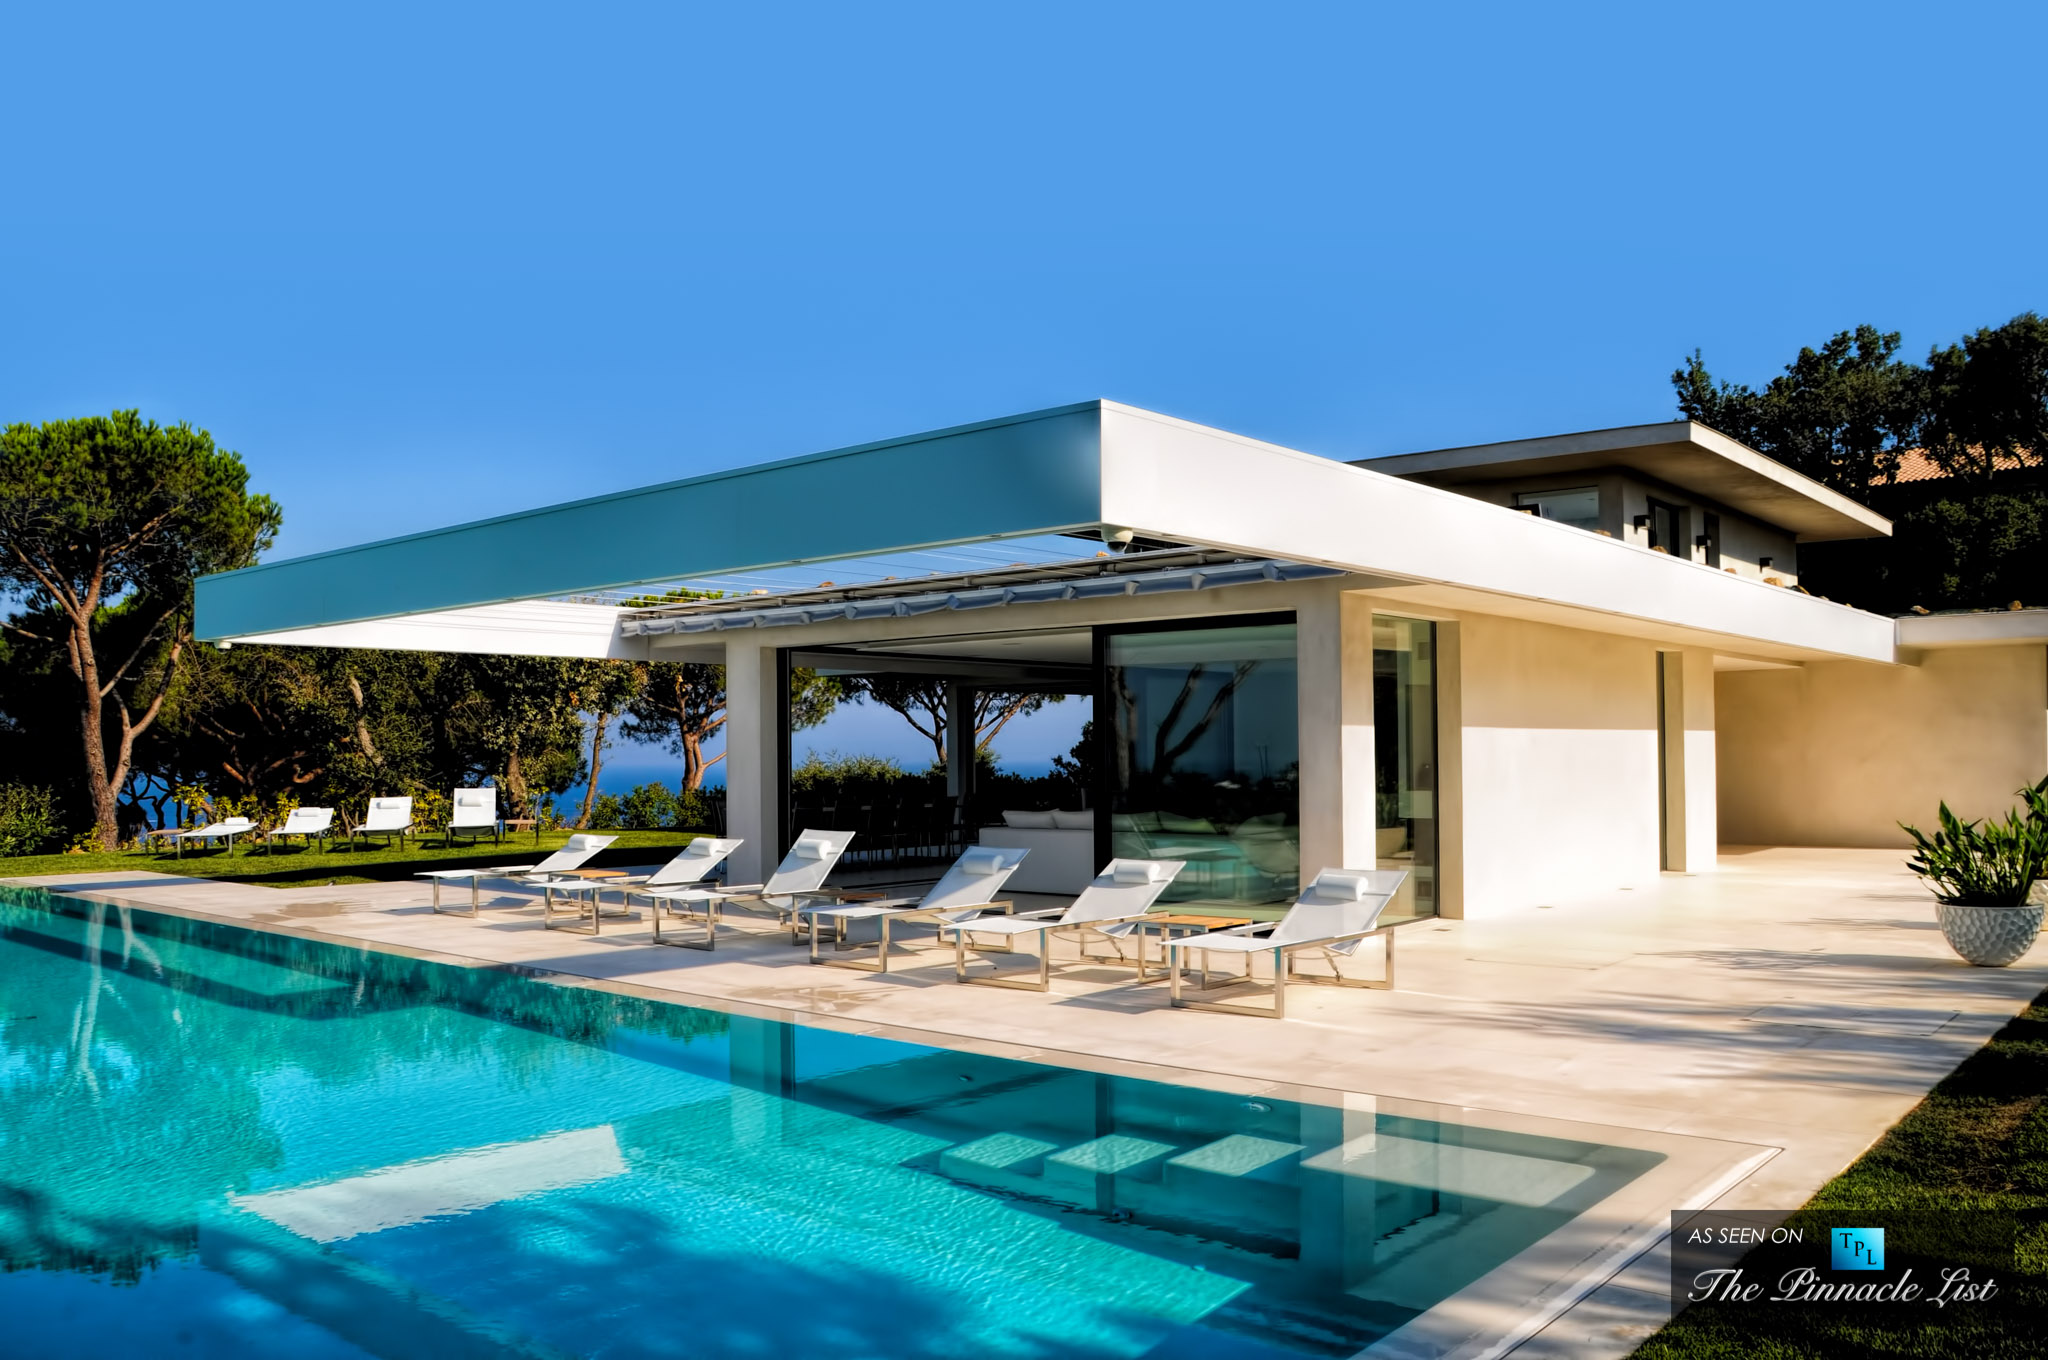 Villa Paradise in St. Tropez - Rent a Family Villa on the French Riviera like No Other